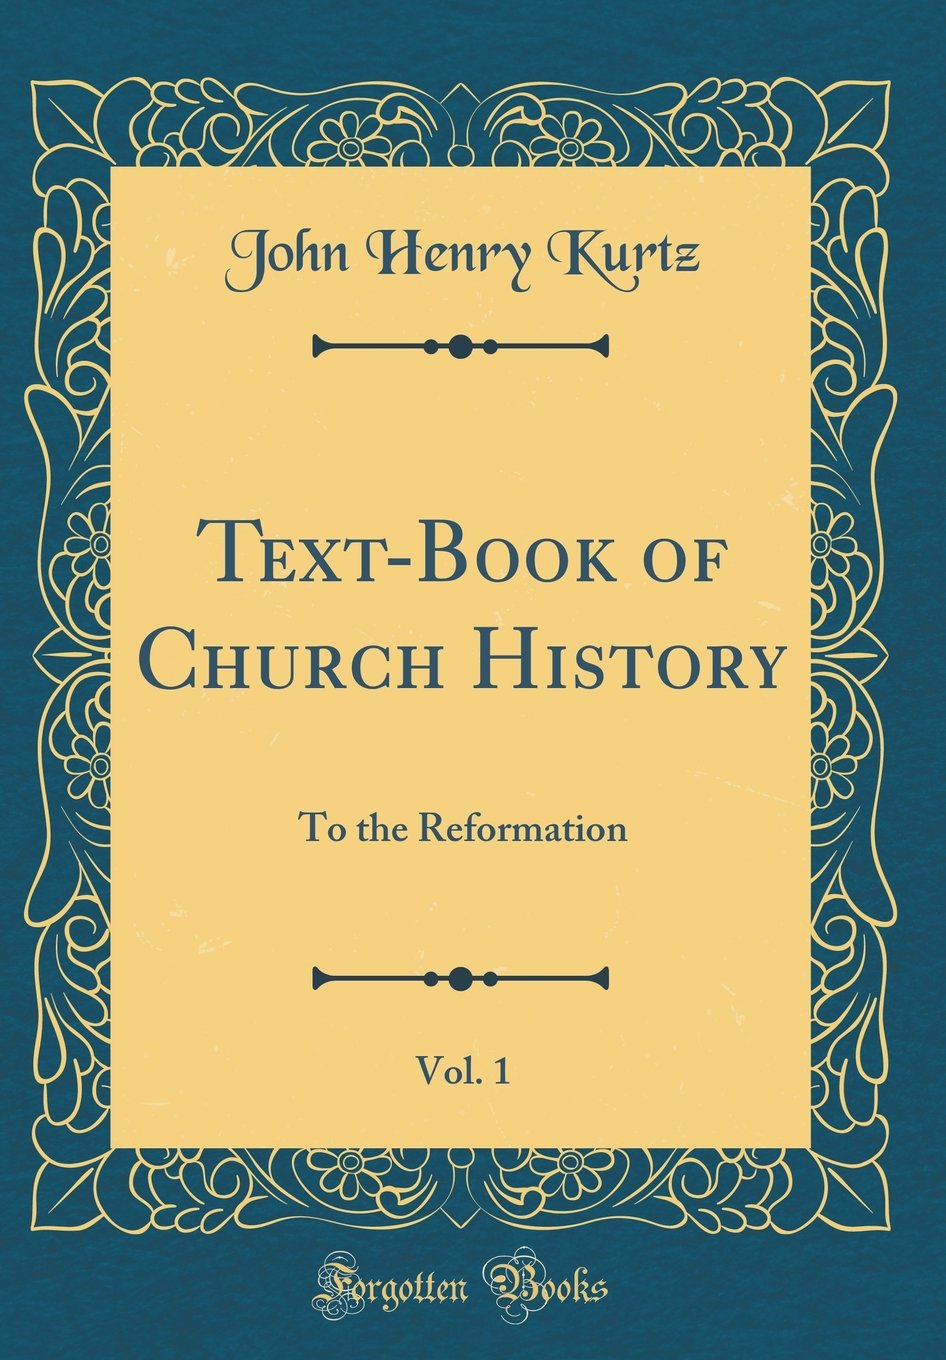 Text-Book of Church History, Vol. 1: To the Reformation (Classic Reprint) PDF